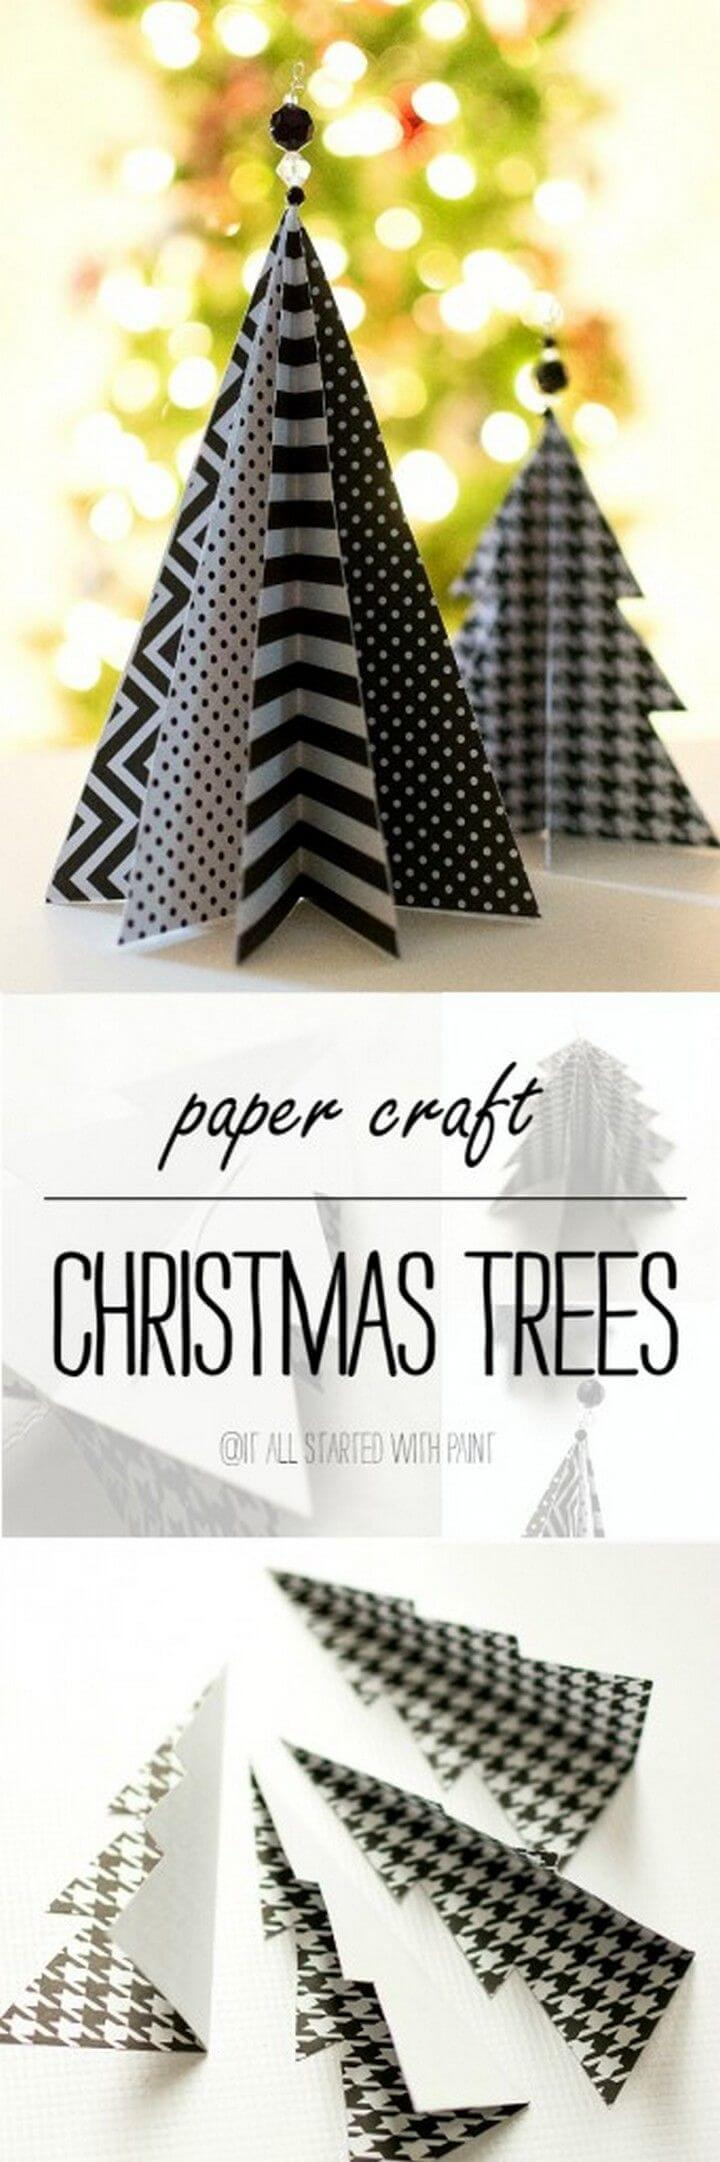 Cute DIY 3D Christmas Trees